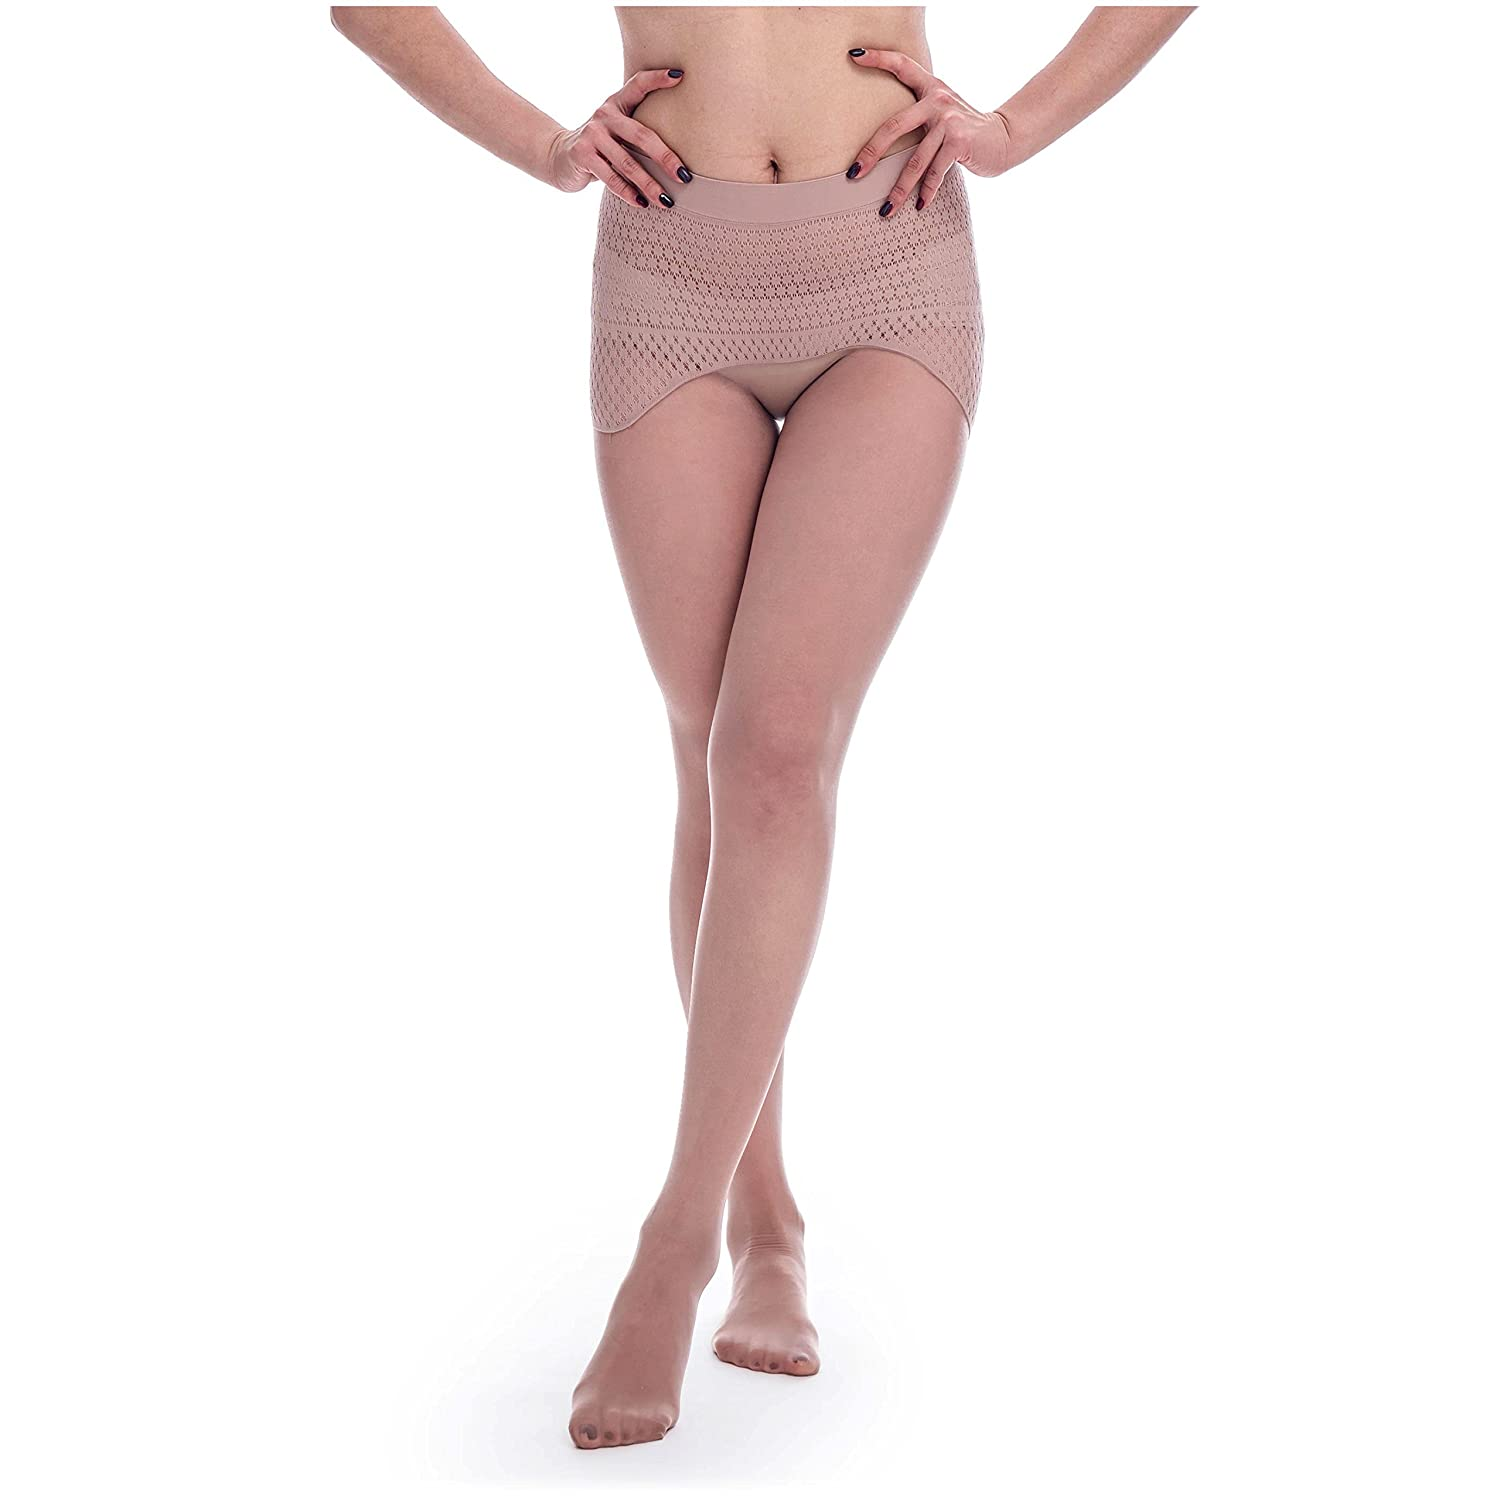 35e42397ec77b ElsaYX 8D Women's Sheer Seamless Pantyhose Tights at Amazon Women's  Clothing store: